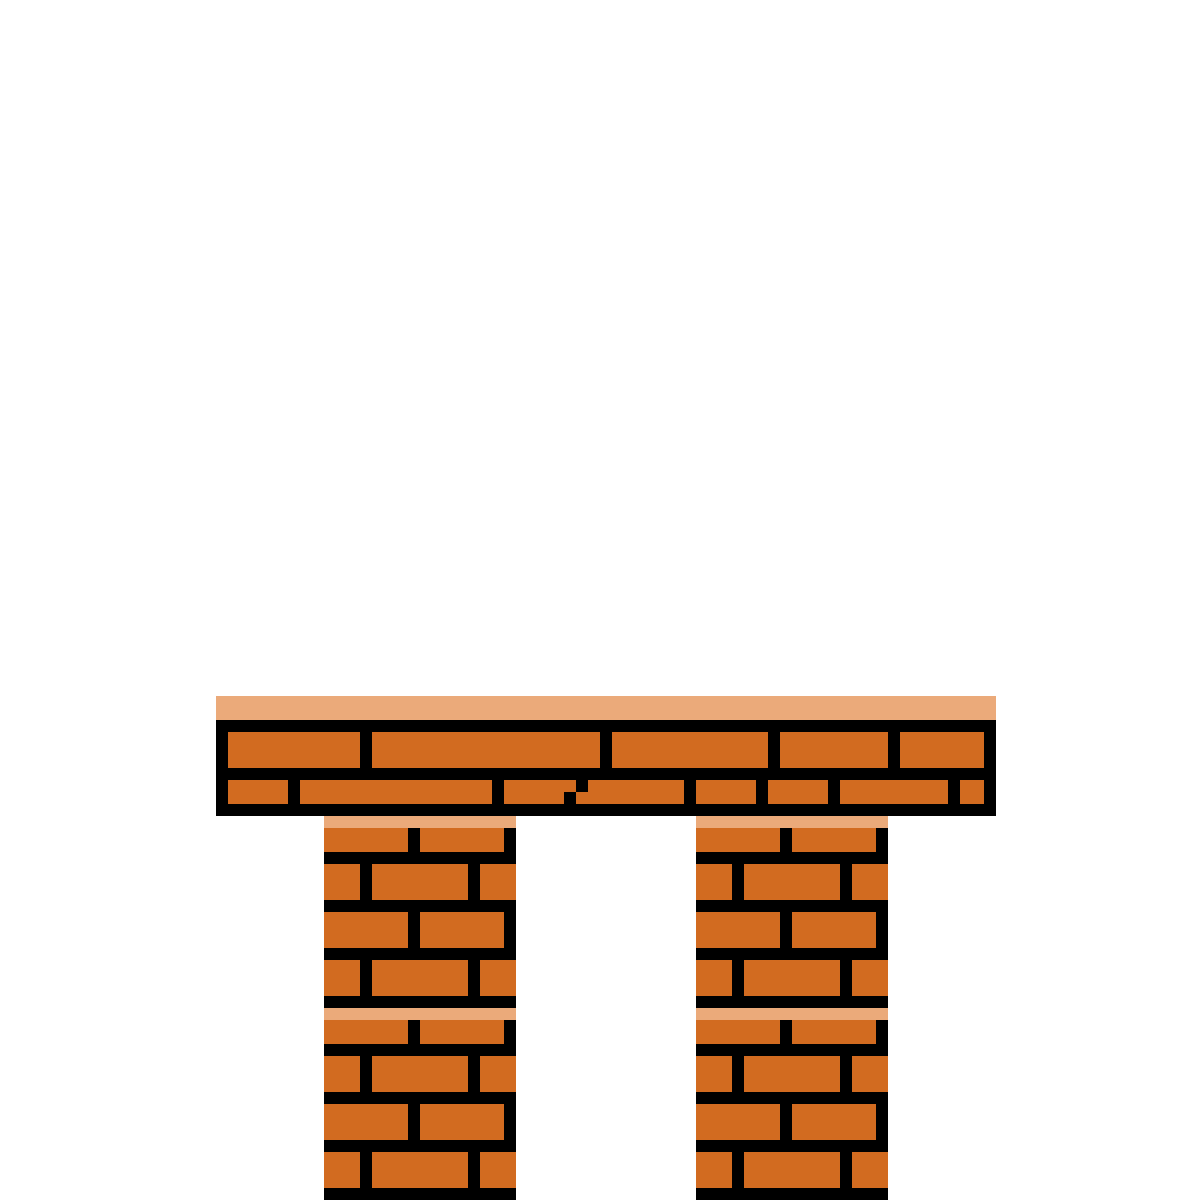 Brick table by Asteroid